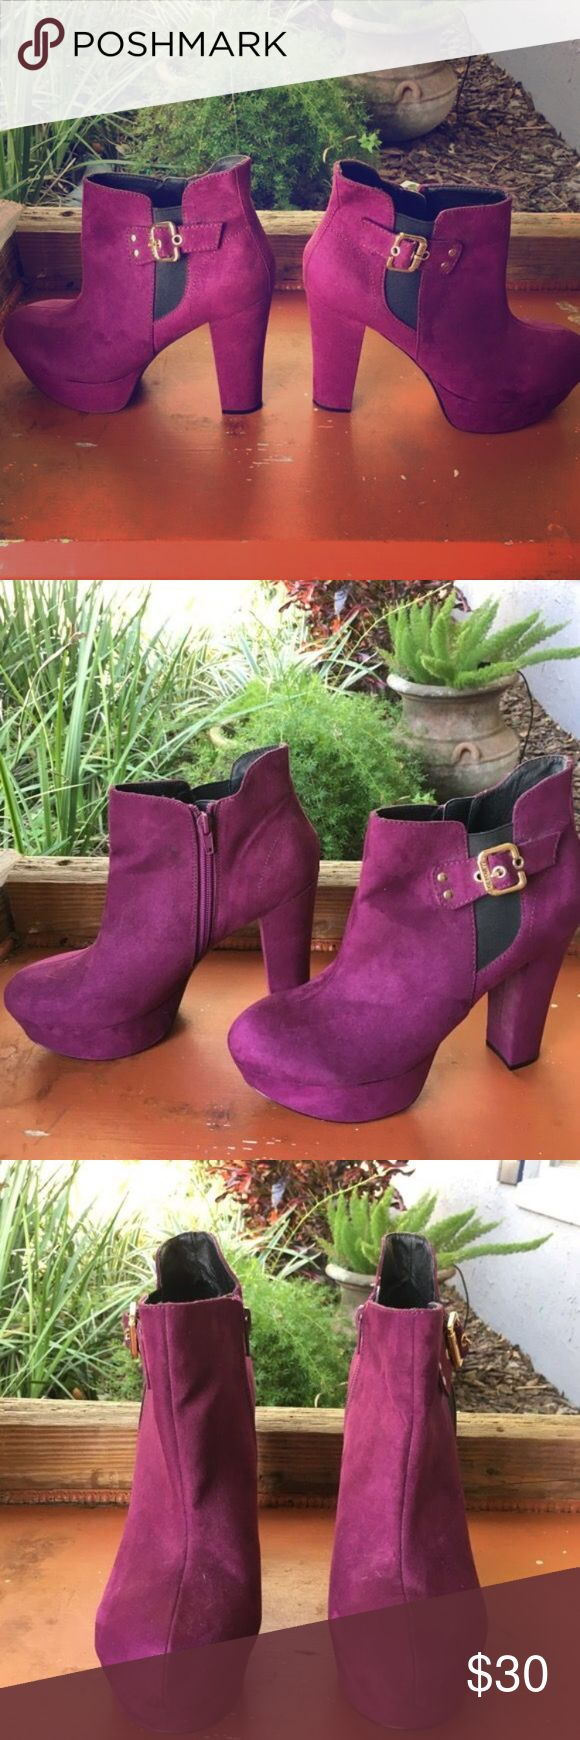 Guess Platform Booties Purple suede Guess Platform booties. Worn once SIZE 9 great condition, need a loving home! Guess Shoes Heeled Boots